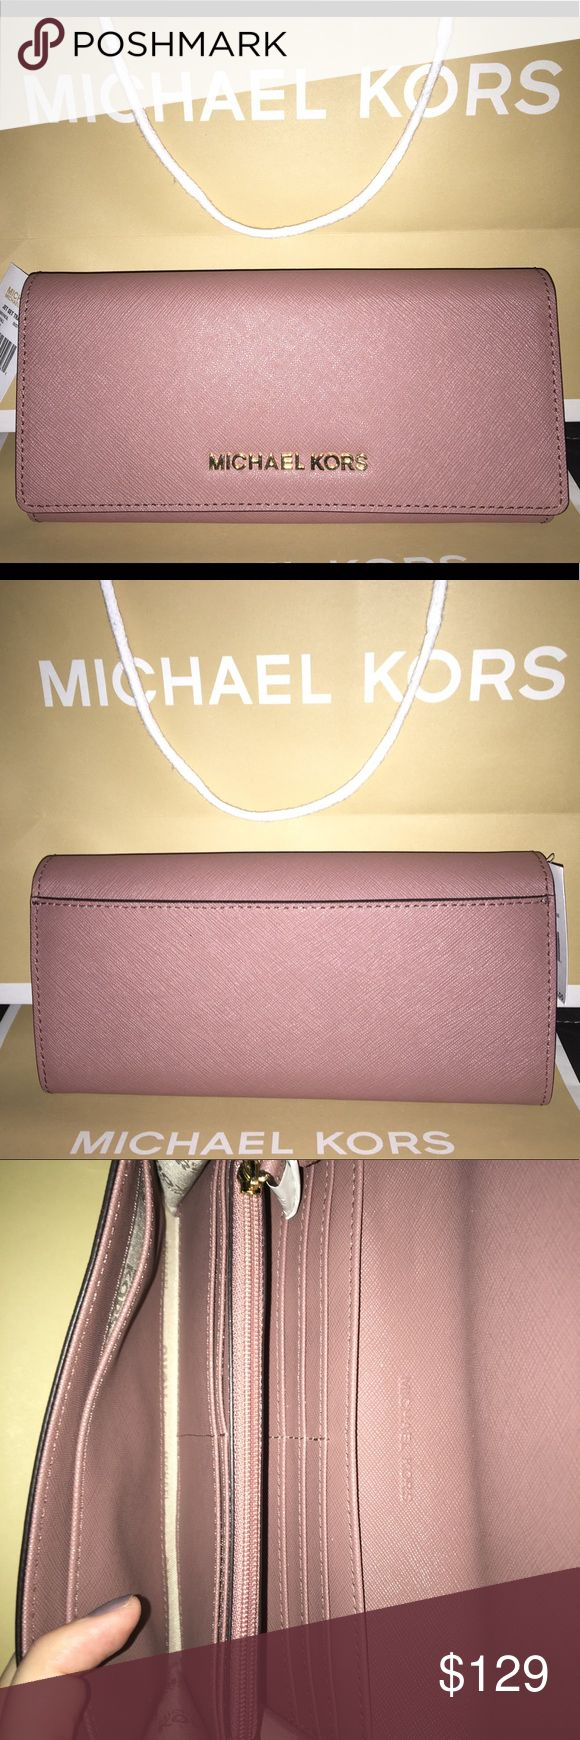 Michael Kors Jet Set Travel Wallet NWT Michael Kors Jet Set Travel Wallet! MK carryall design and water and scratch-resistant saffiano leather in gorgeous dusty rose color! Stainless-steel, gold-toned Michael Kors lettering. 10 internal card slots, 1 internal zip-close pocket, 2 side internal slip pockets, 2 internal open compartments, and 1 external back slip picket. Light-tan internal linen lining for easy-finding of belongings. Snap-closure.  Item code: 35H6GYAE3L Michael Kors Bags…